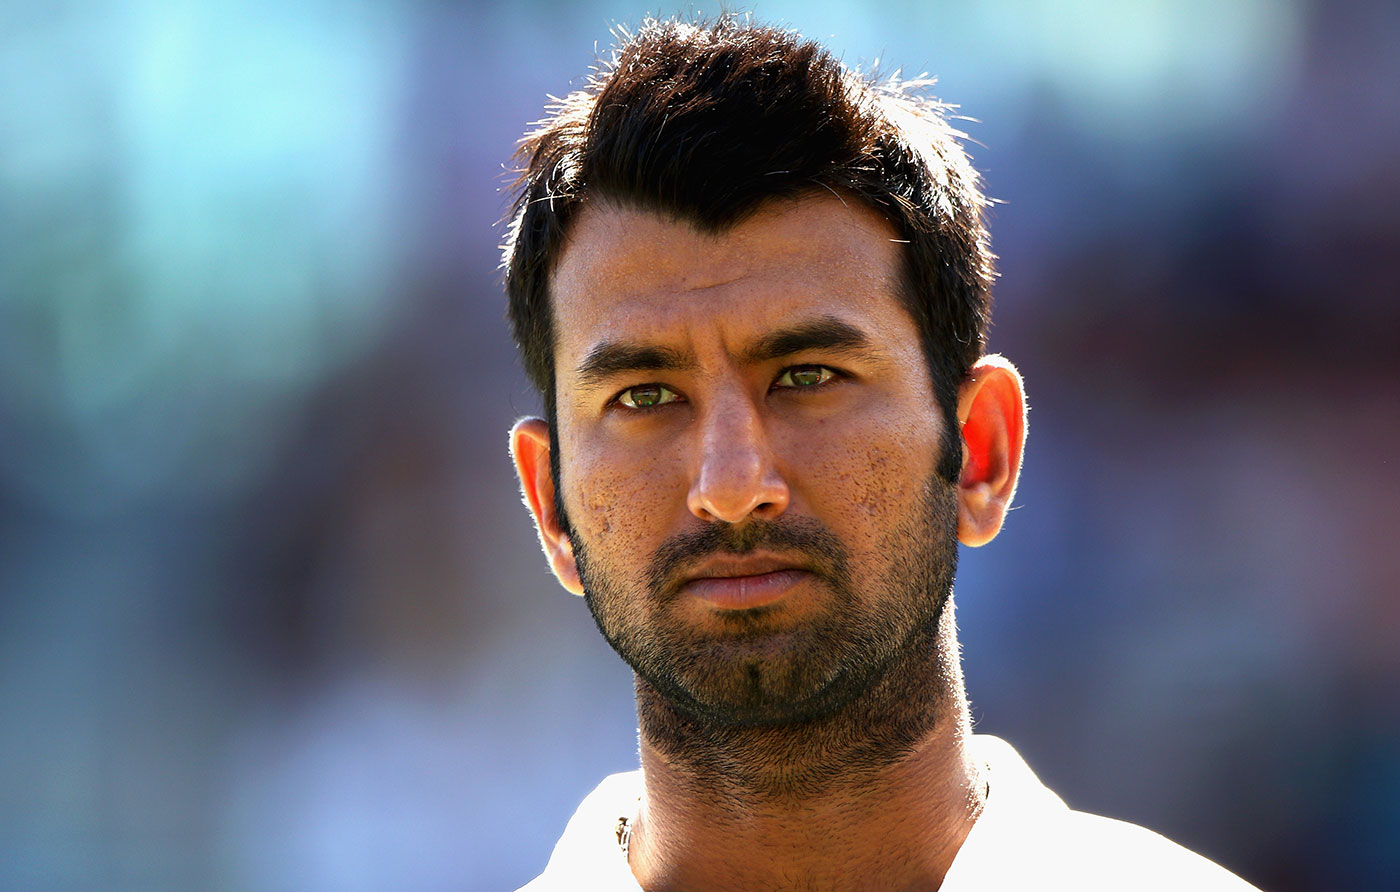 Pujara fans don't need endorsements, tattoos or funky nicknames to root for a batsman who satisfies them in the best form of them all - serious run-scoring